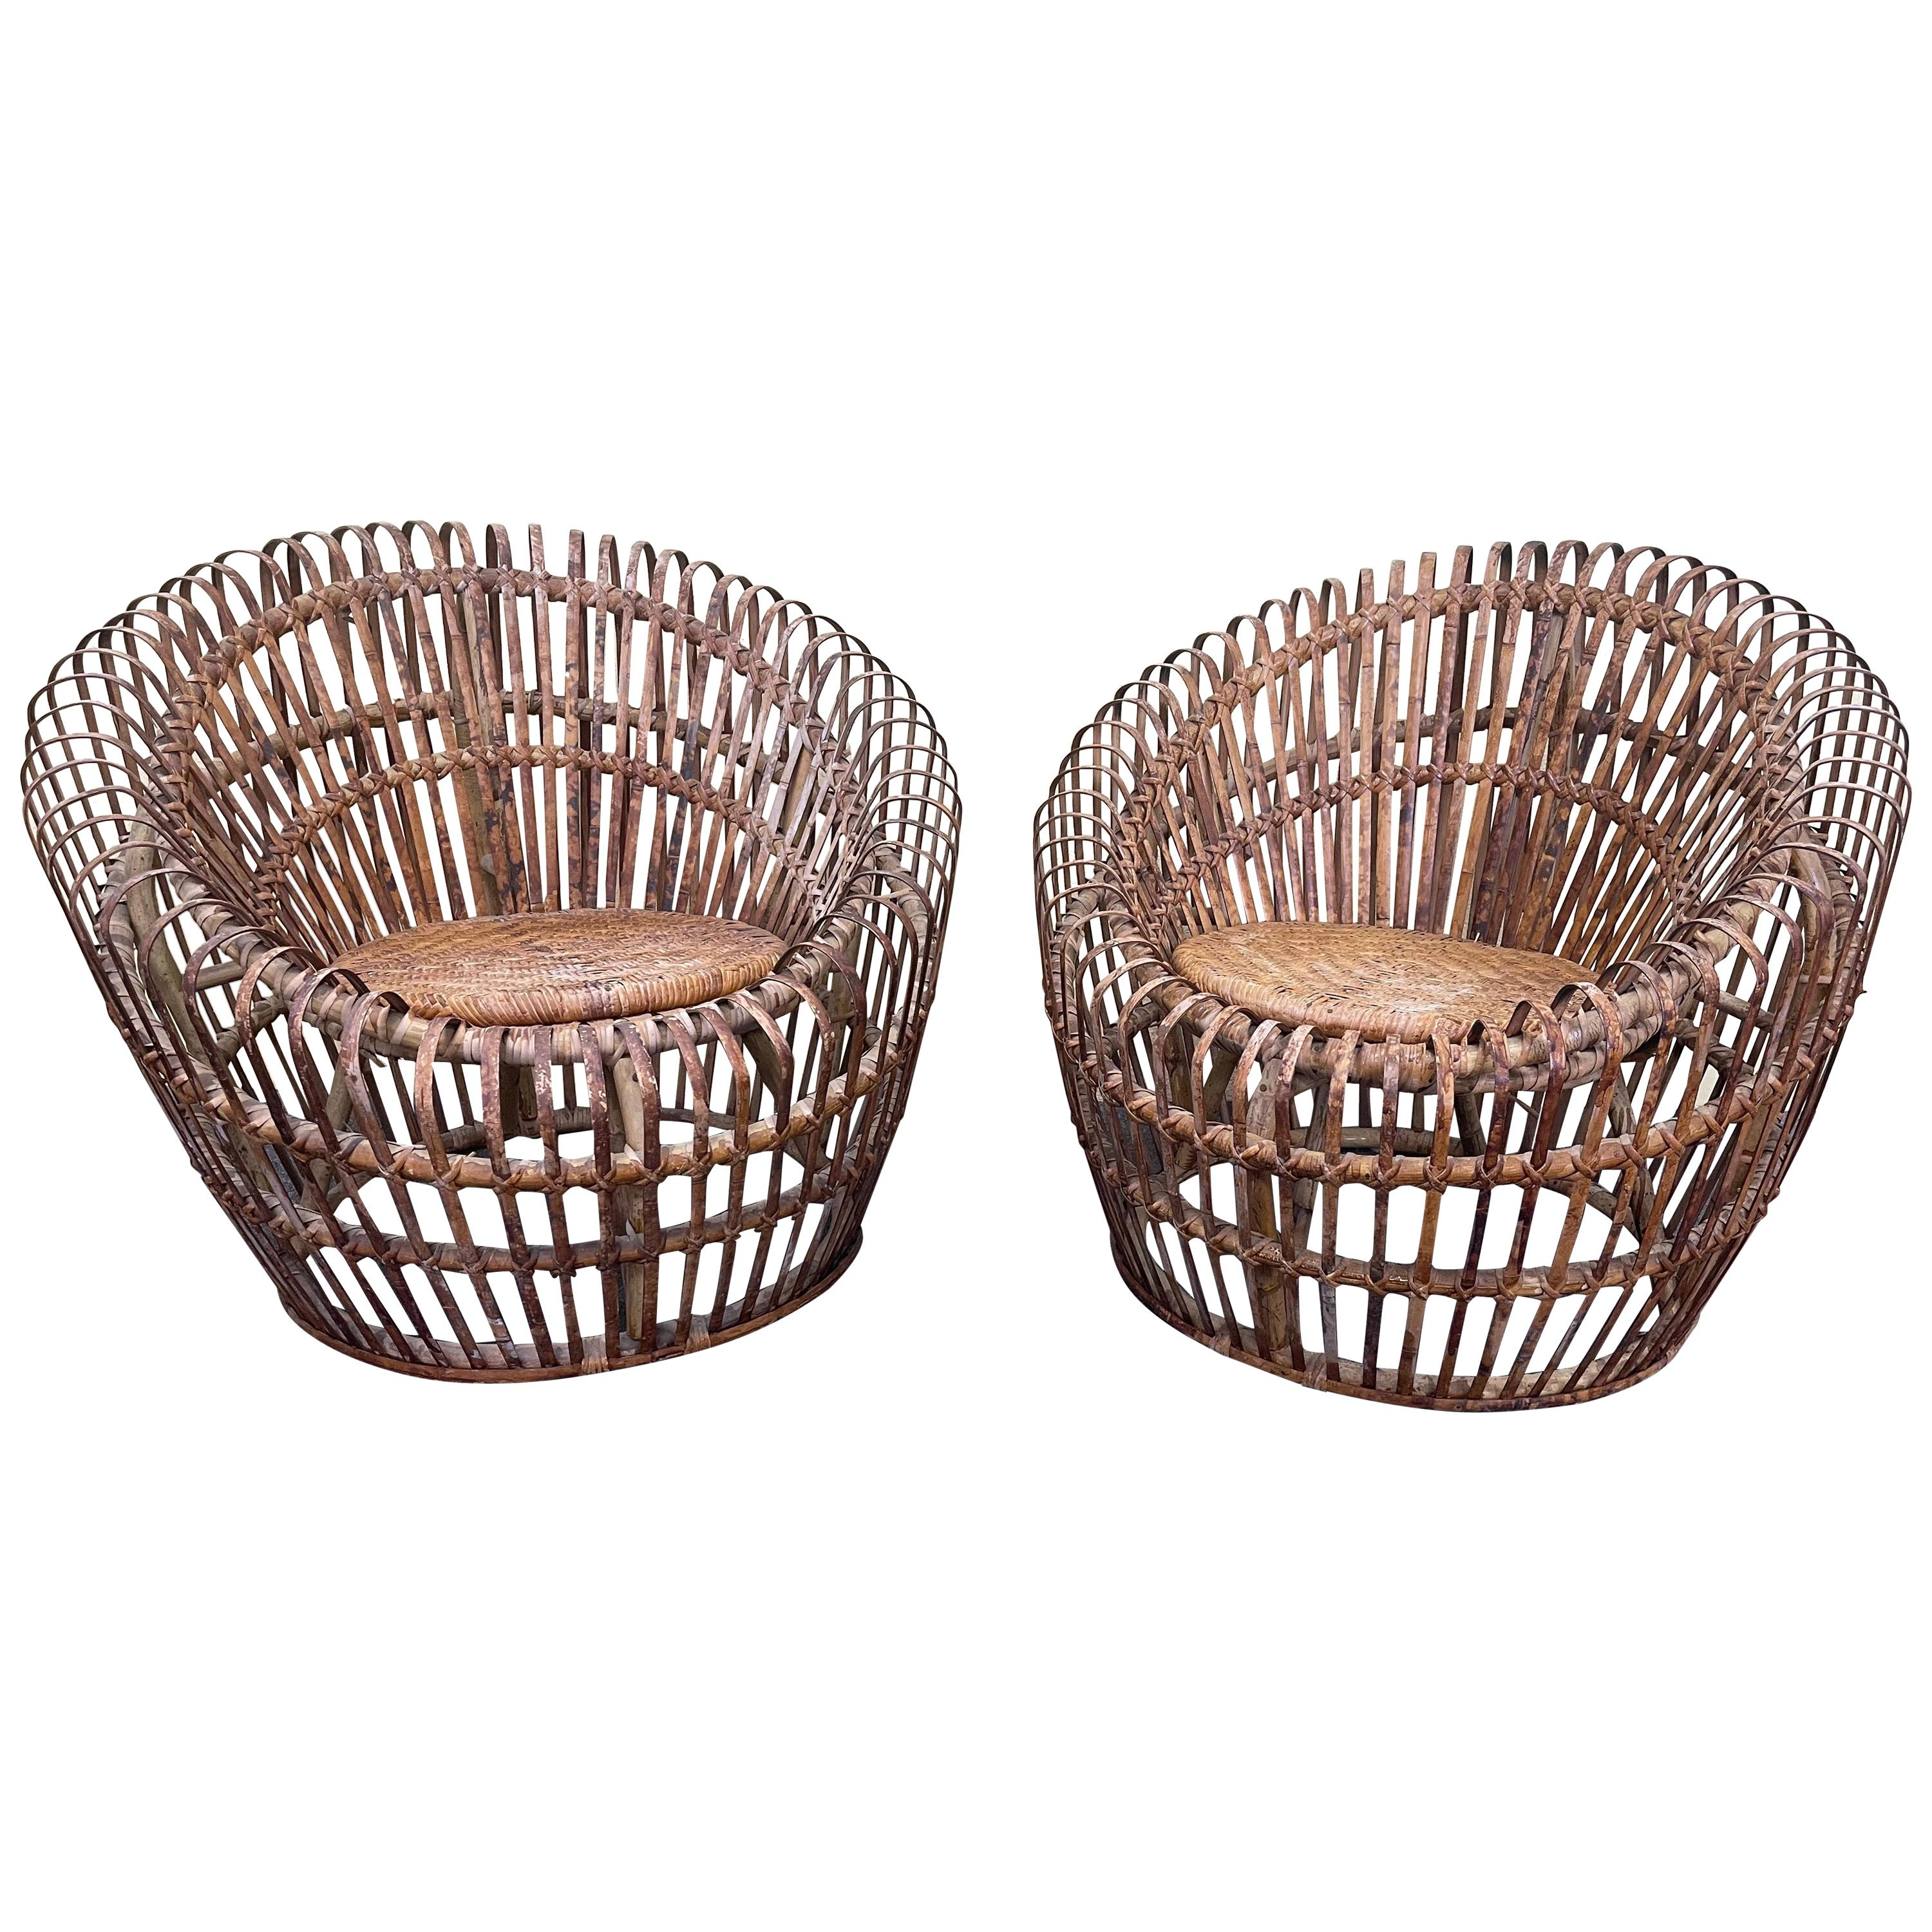 Pair of Woven Bamboo Lounge Chairs in the Style of Franco Albini